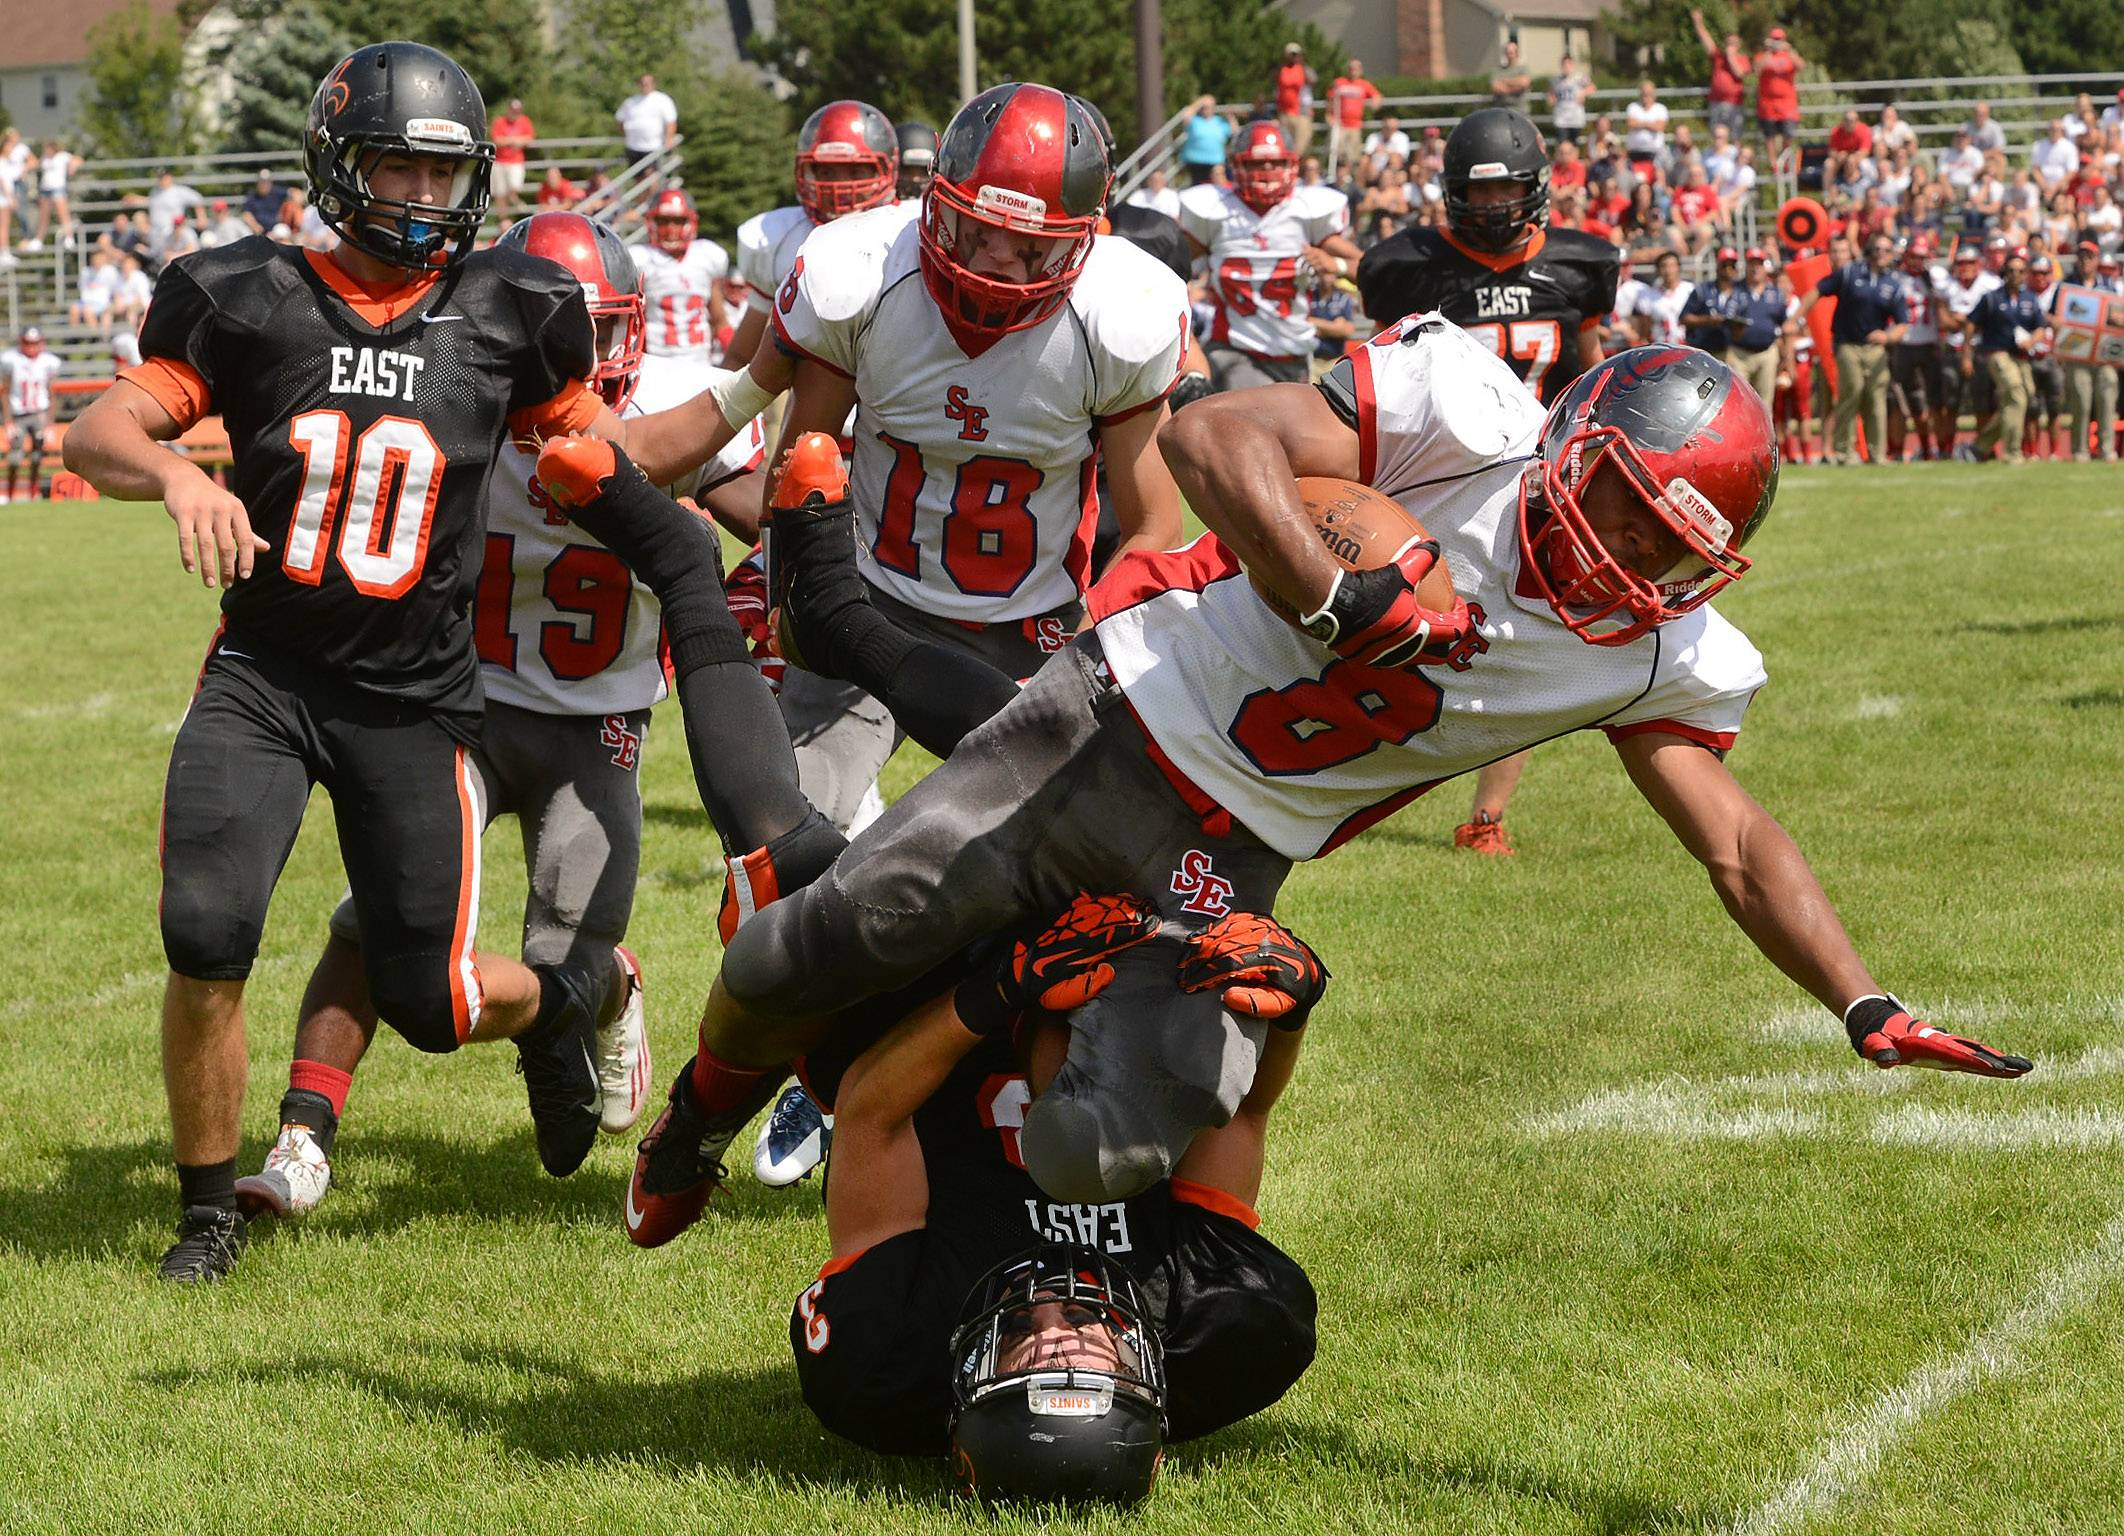 Kyle Ware of South Elgin crashes over Tommy Fink of St. Charles East during Week 1 action.